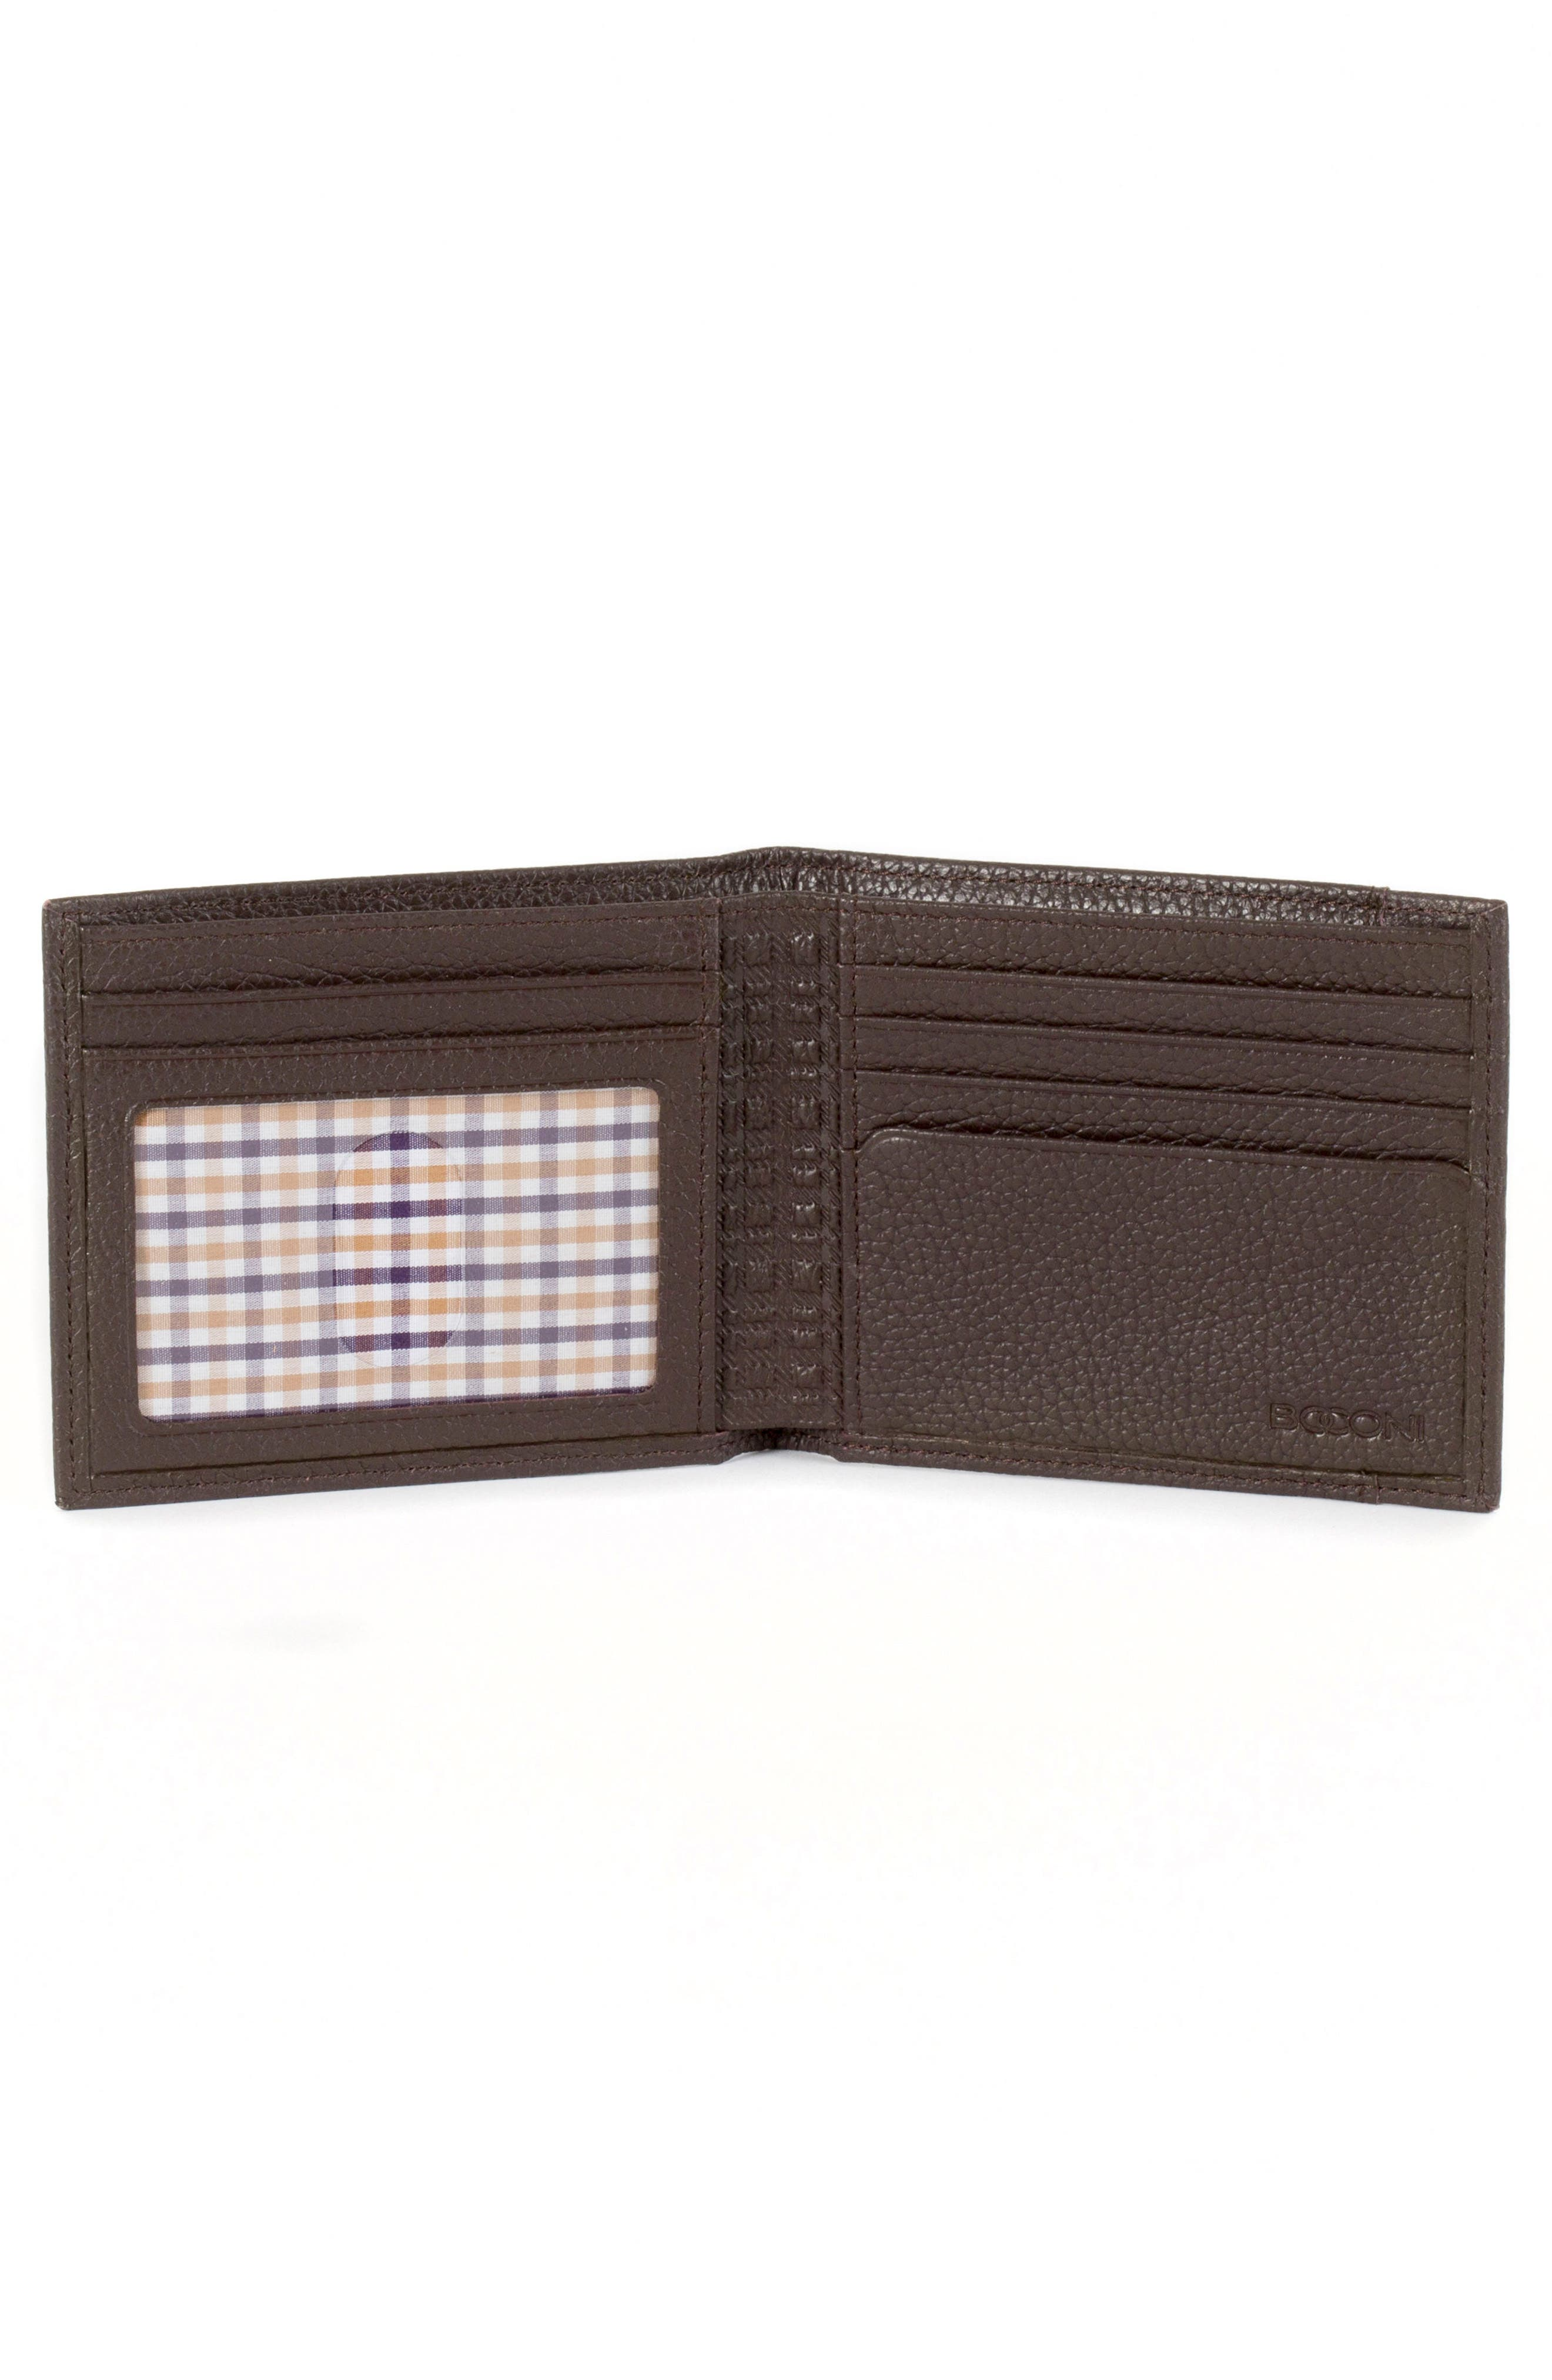 Garth Leather Bifold Wallet,                             Alternate thumbnail 4, color,